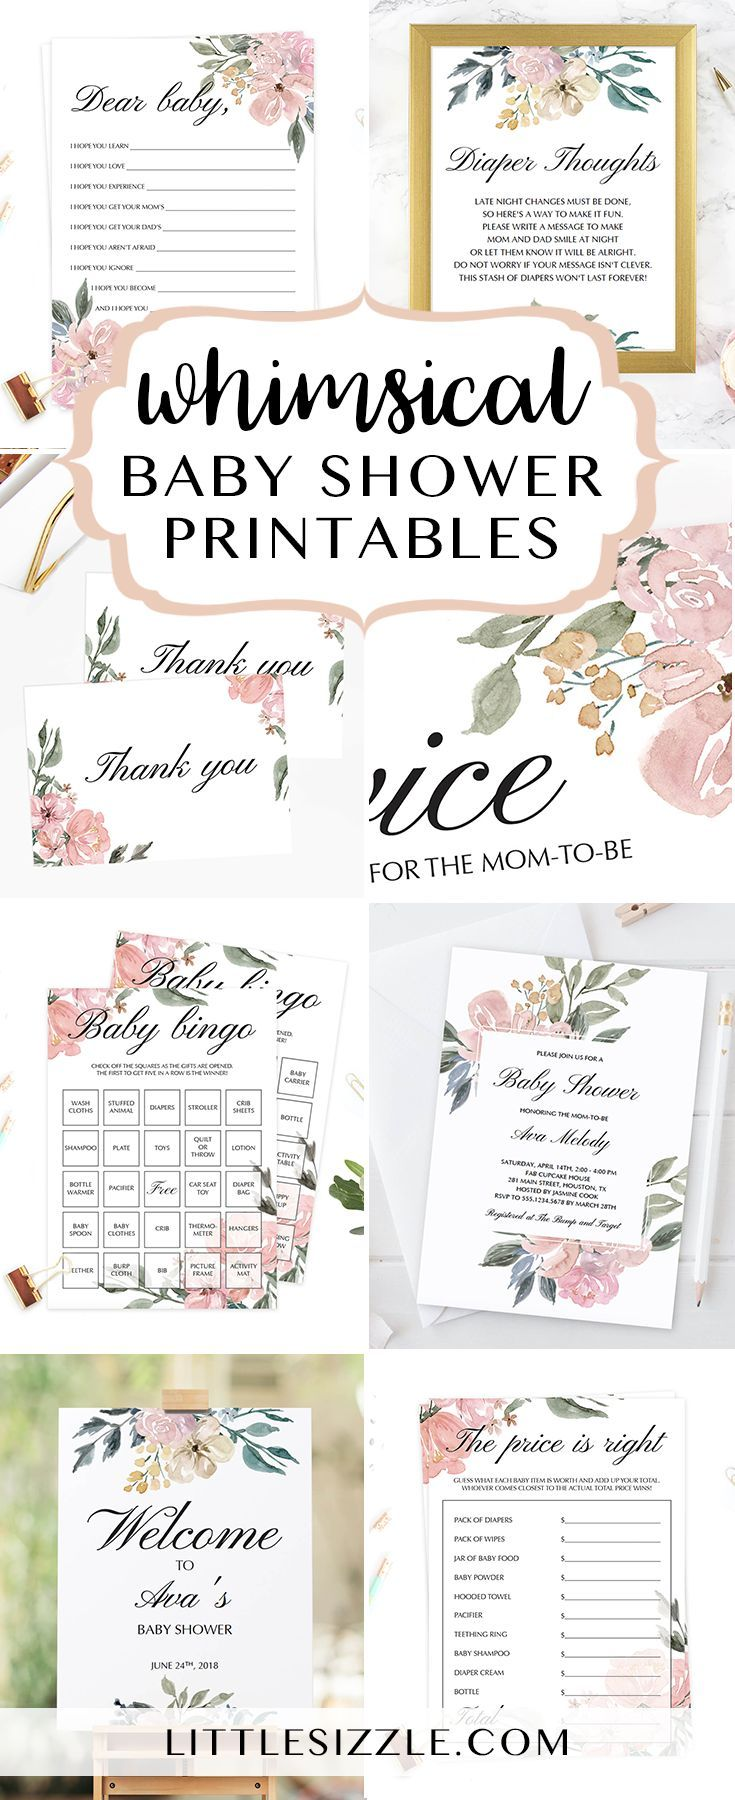 Whimsical baby shower ideas by LittleSizzle. Printable whimsical themed baby shower games, whimsical floral shower invitation templates and printable floral baby shower decor. Whether you are hosting a baby girl shower or a gender neutral baby shower these whimsical inspired baby shower printables with a blend of soft tones and pink floral arrangements will set the tone! #babyshowerthemes #babyshowerideas #DIY #printables #whimsical #floral #babyshowergames #invitationtemplates…